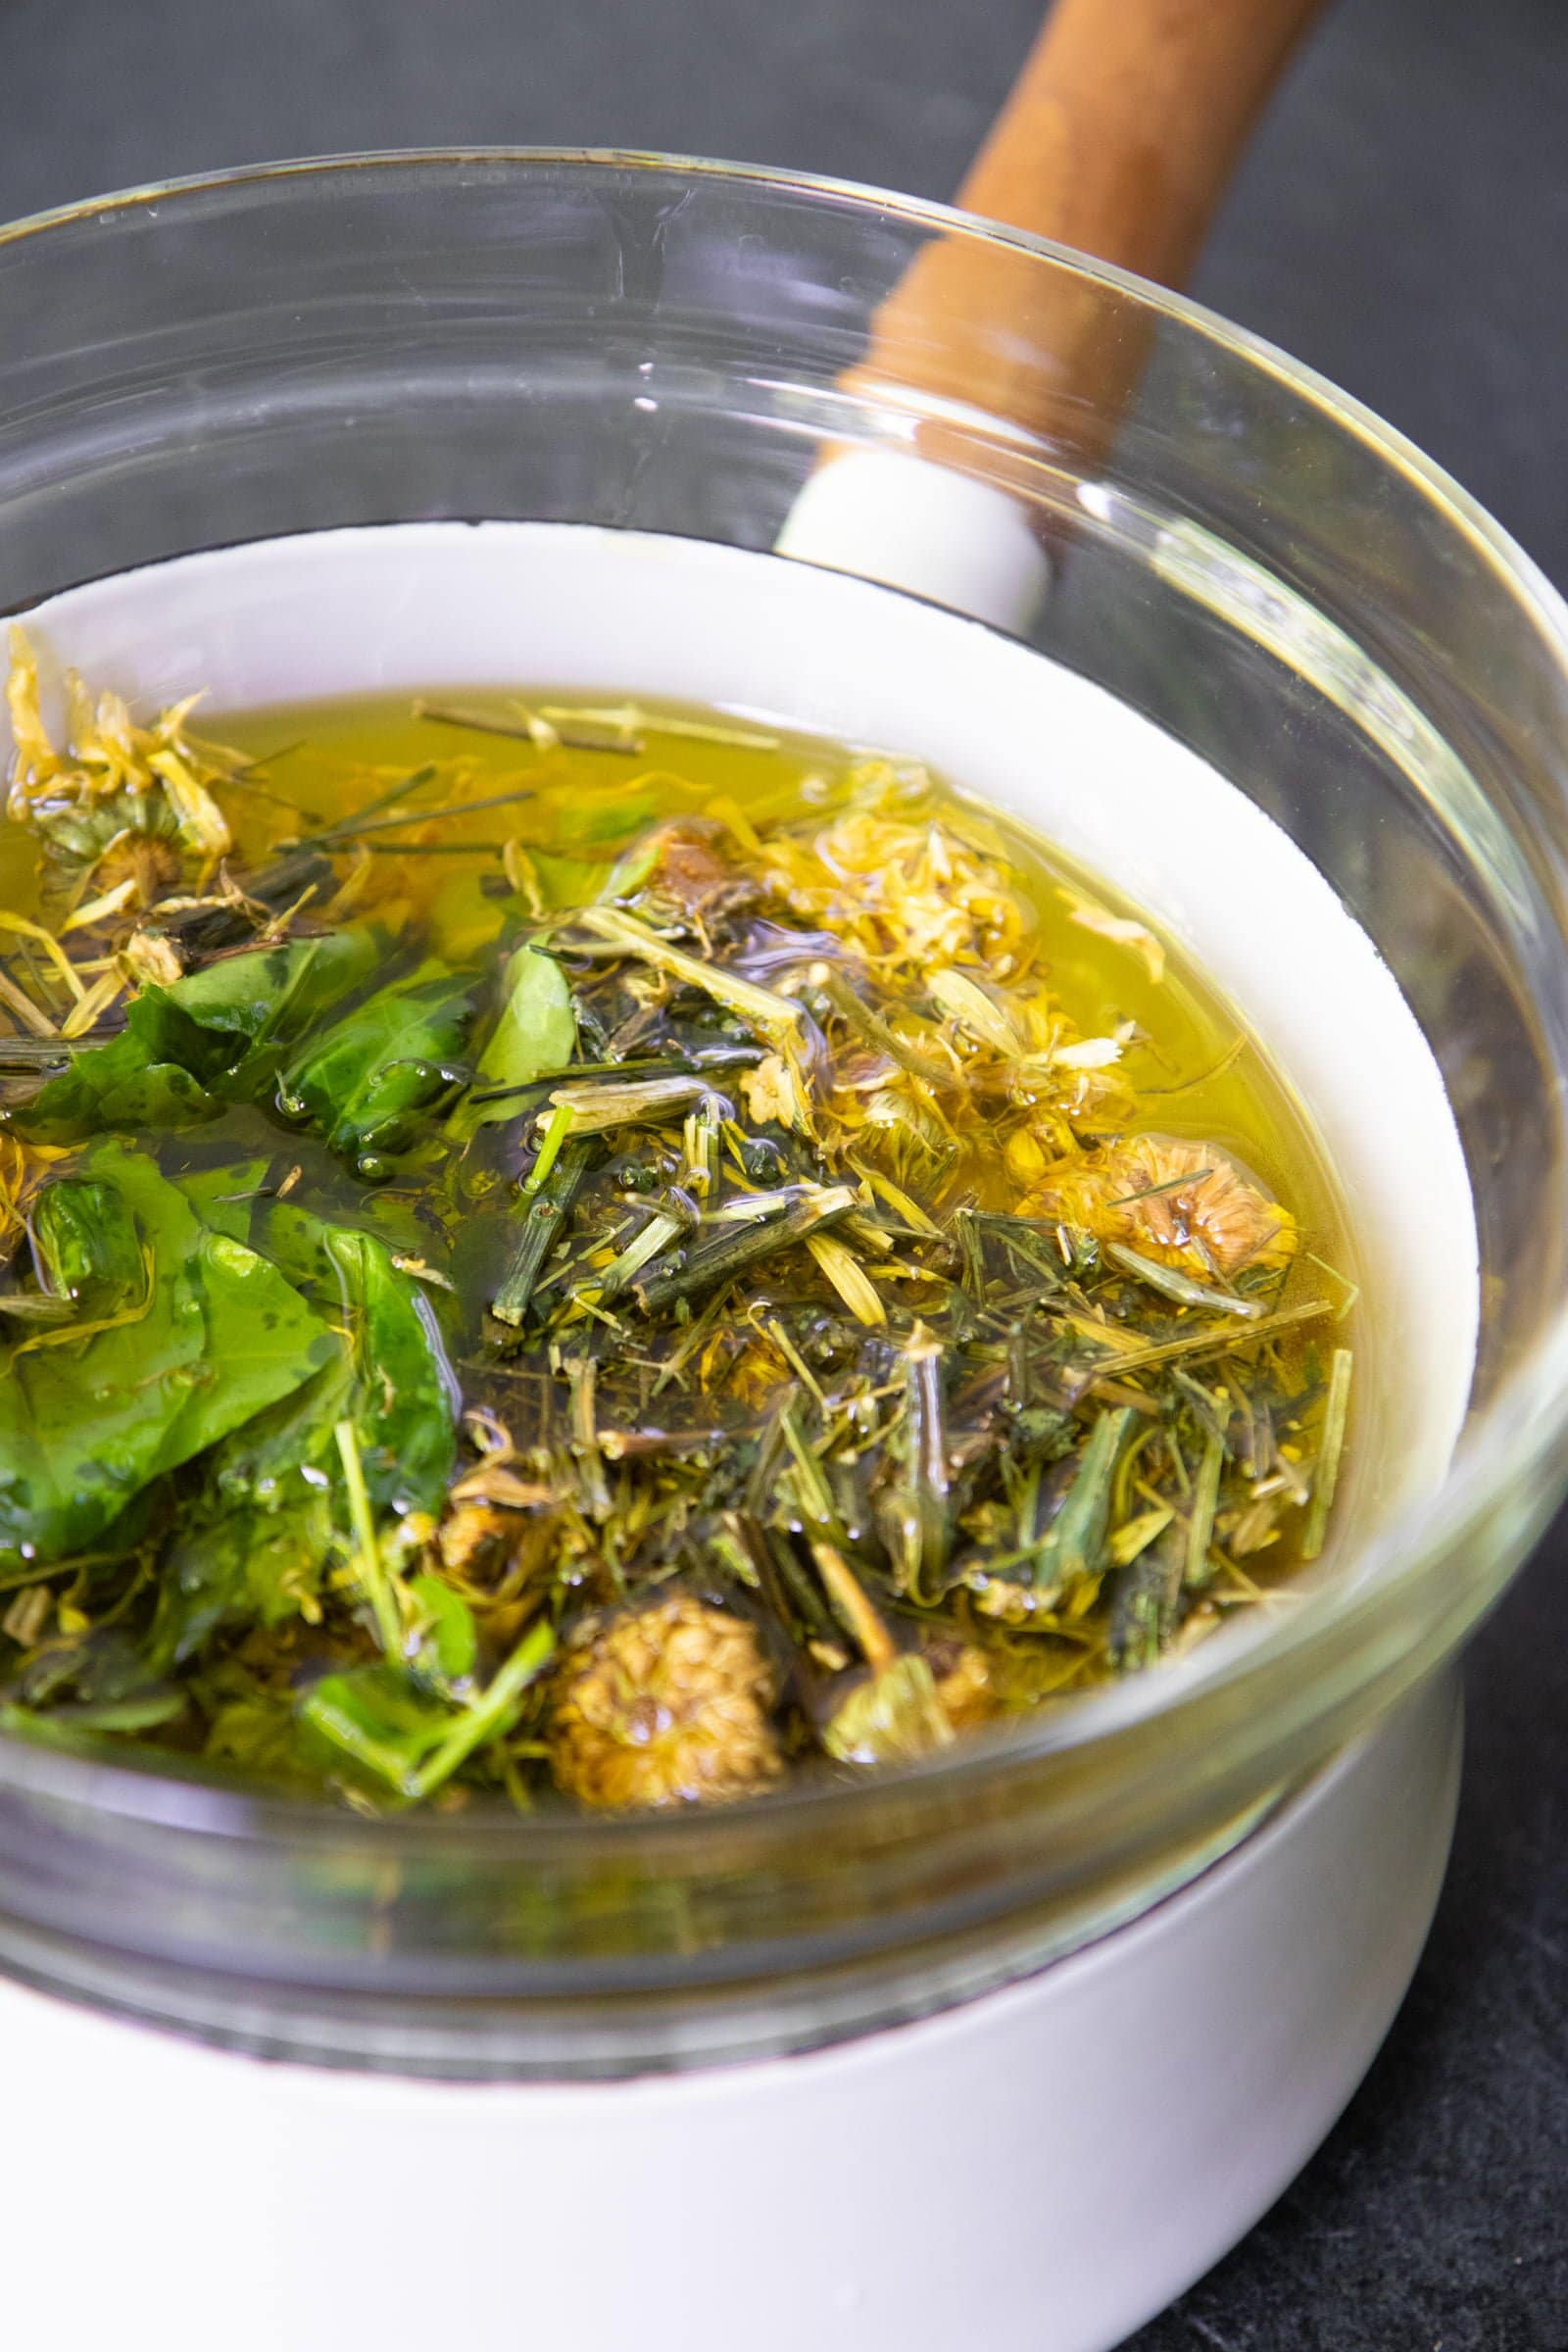 Glass bowl filled with herbs and oil set over simmering water, to infuse the oil